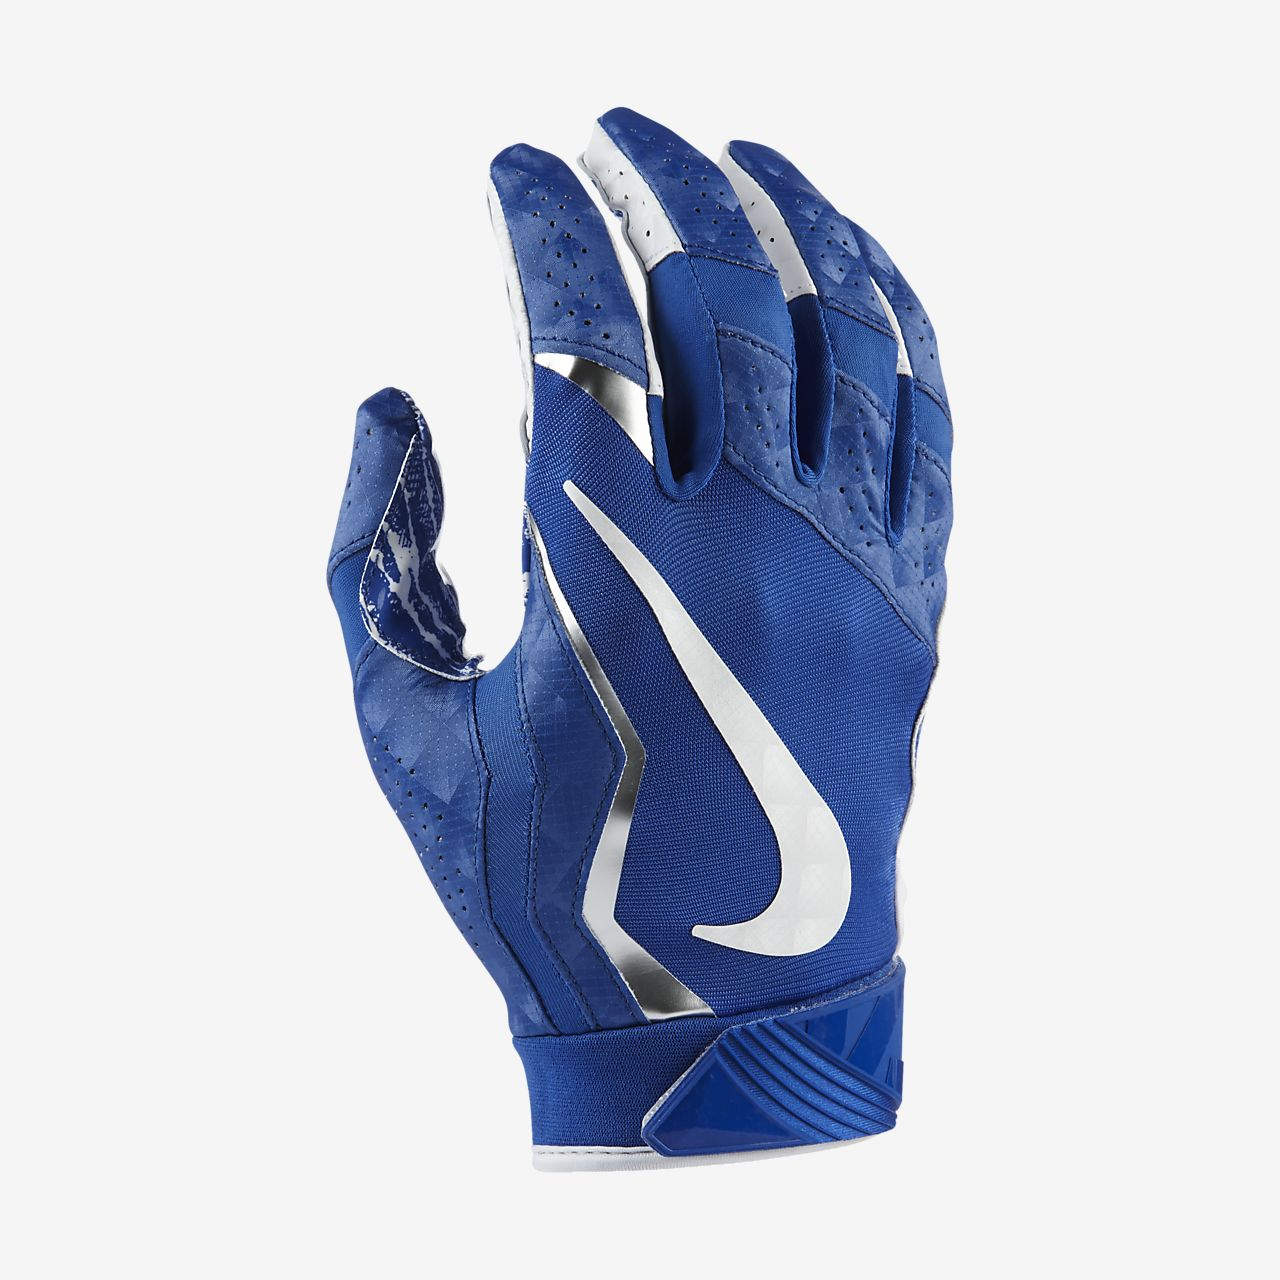 ... Nike Vapor Jet 4.0 Football Gloves